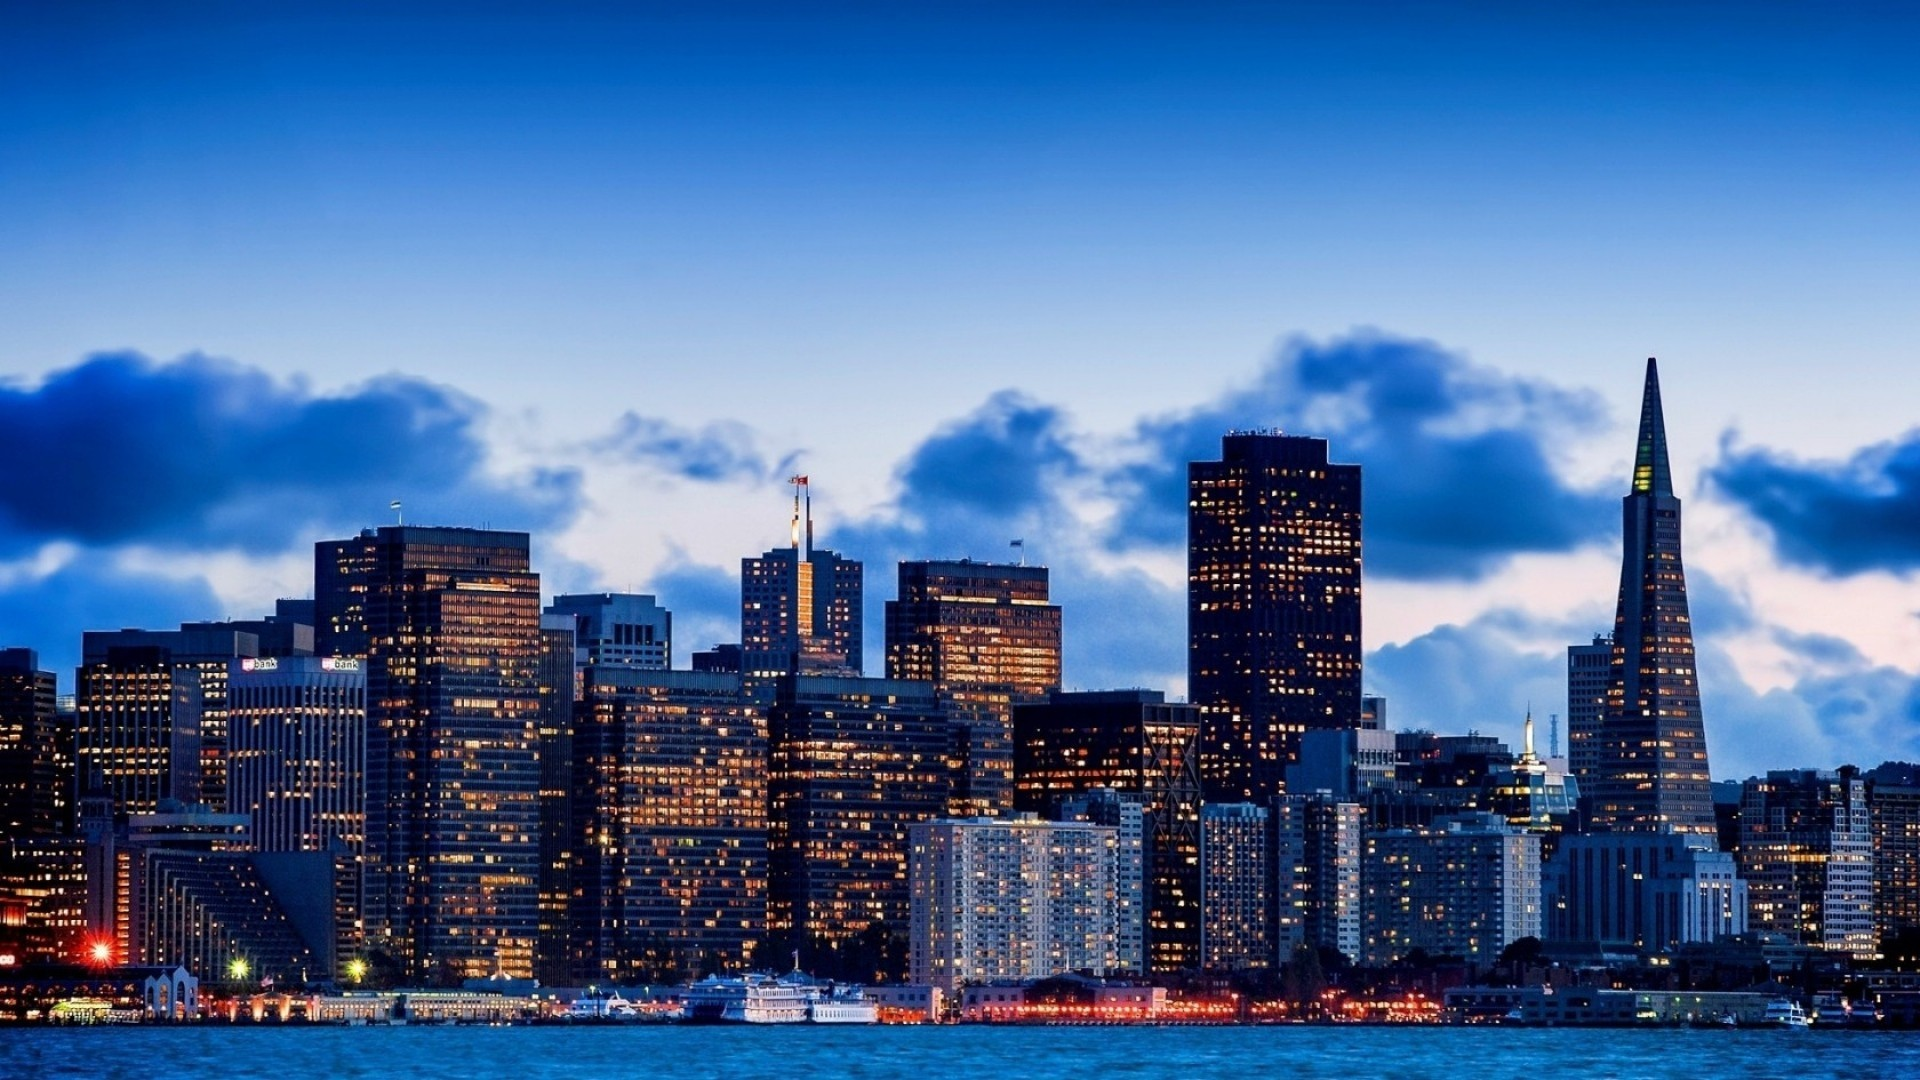 1920x1080 San Francisco Evening California Night Panorama Bay Skyscrapers City Lights  Best Wallpapers -